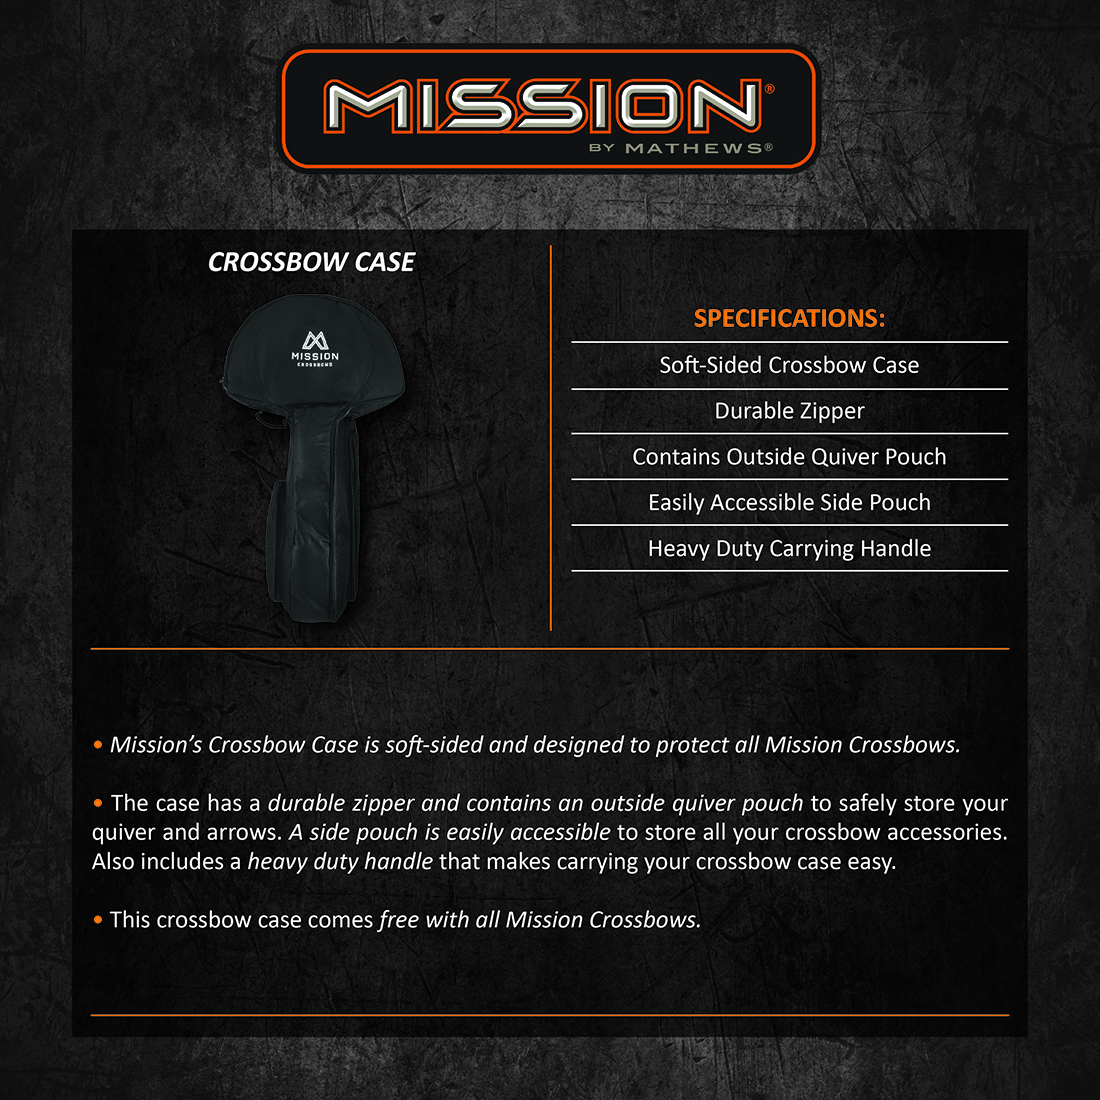 Mission_Crossbow_Case_Product_Description